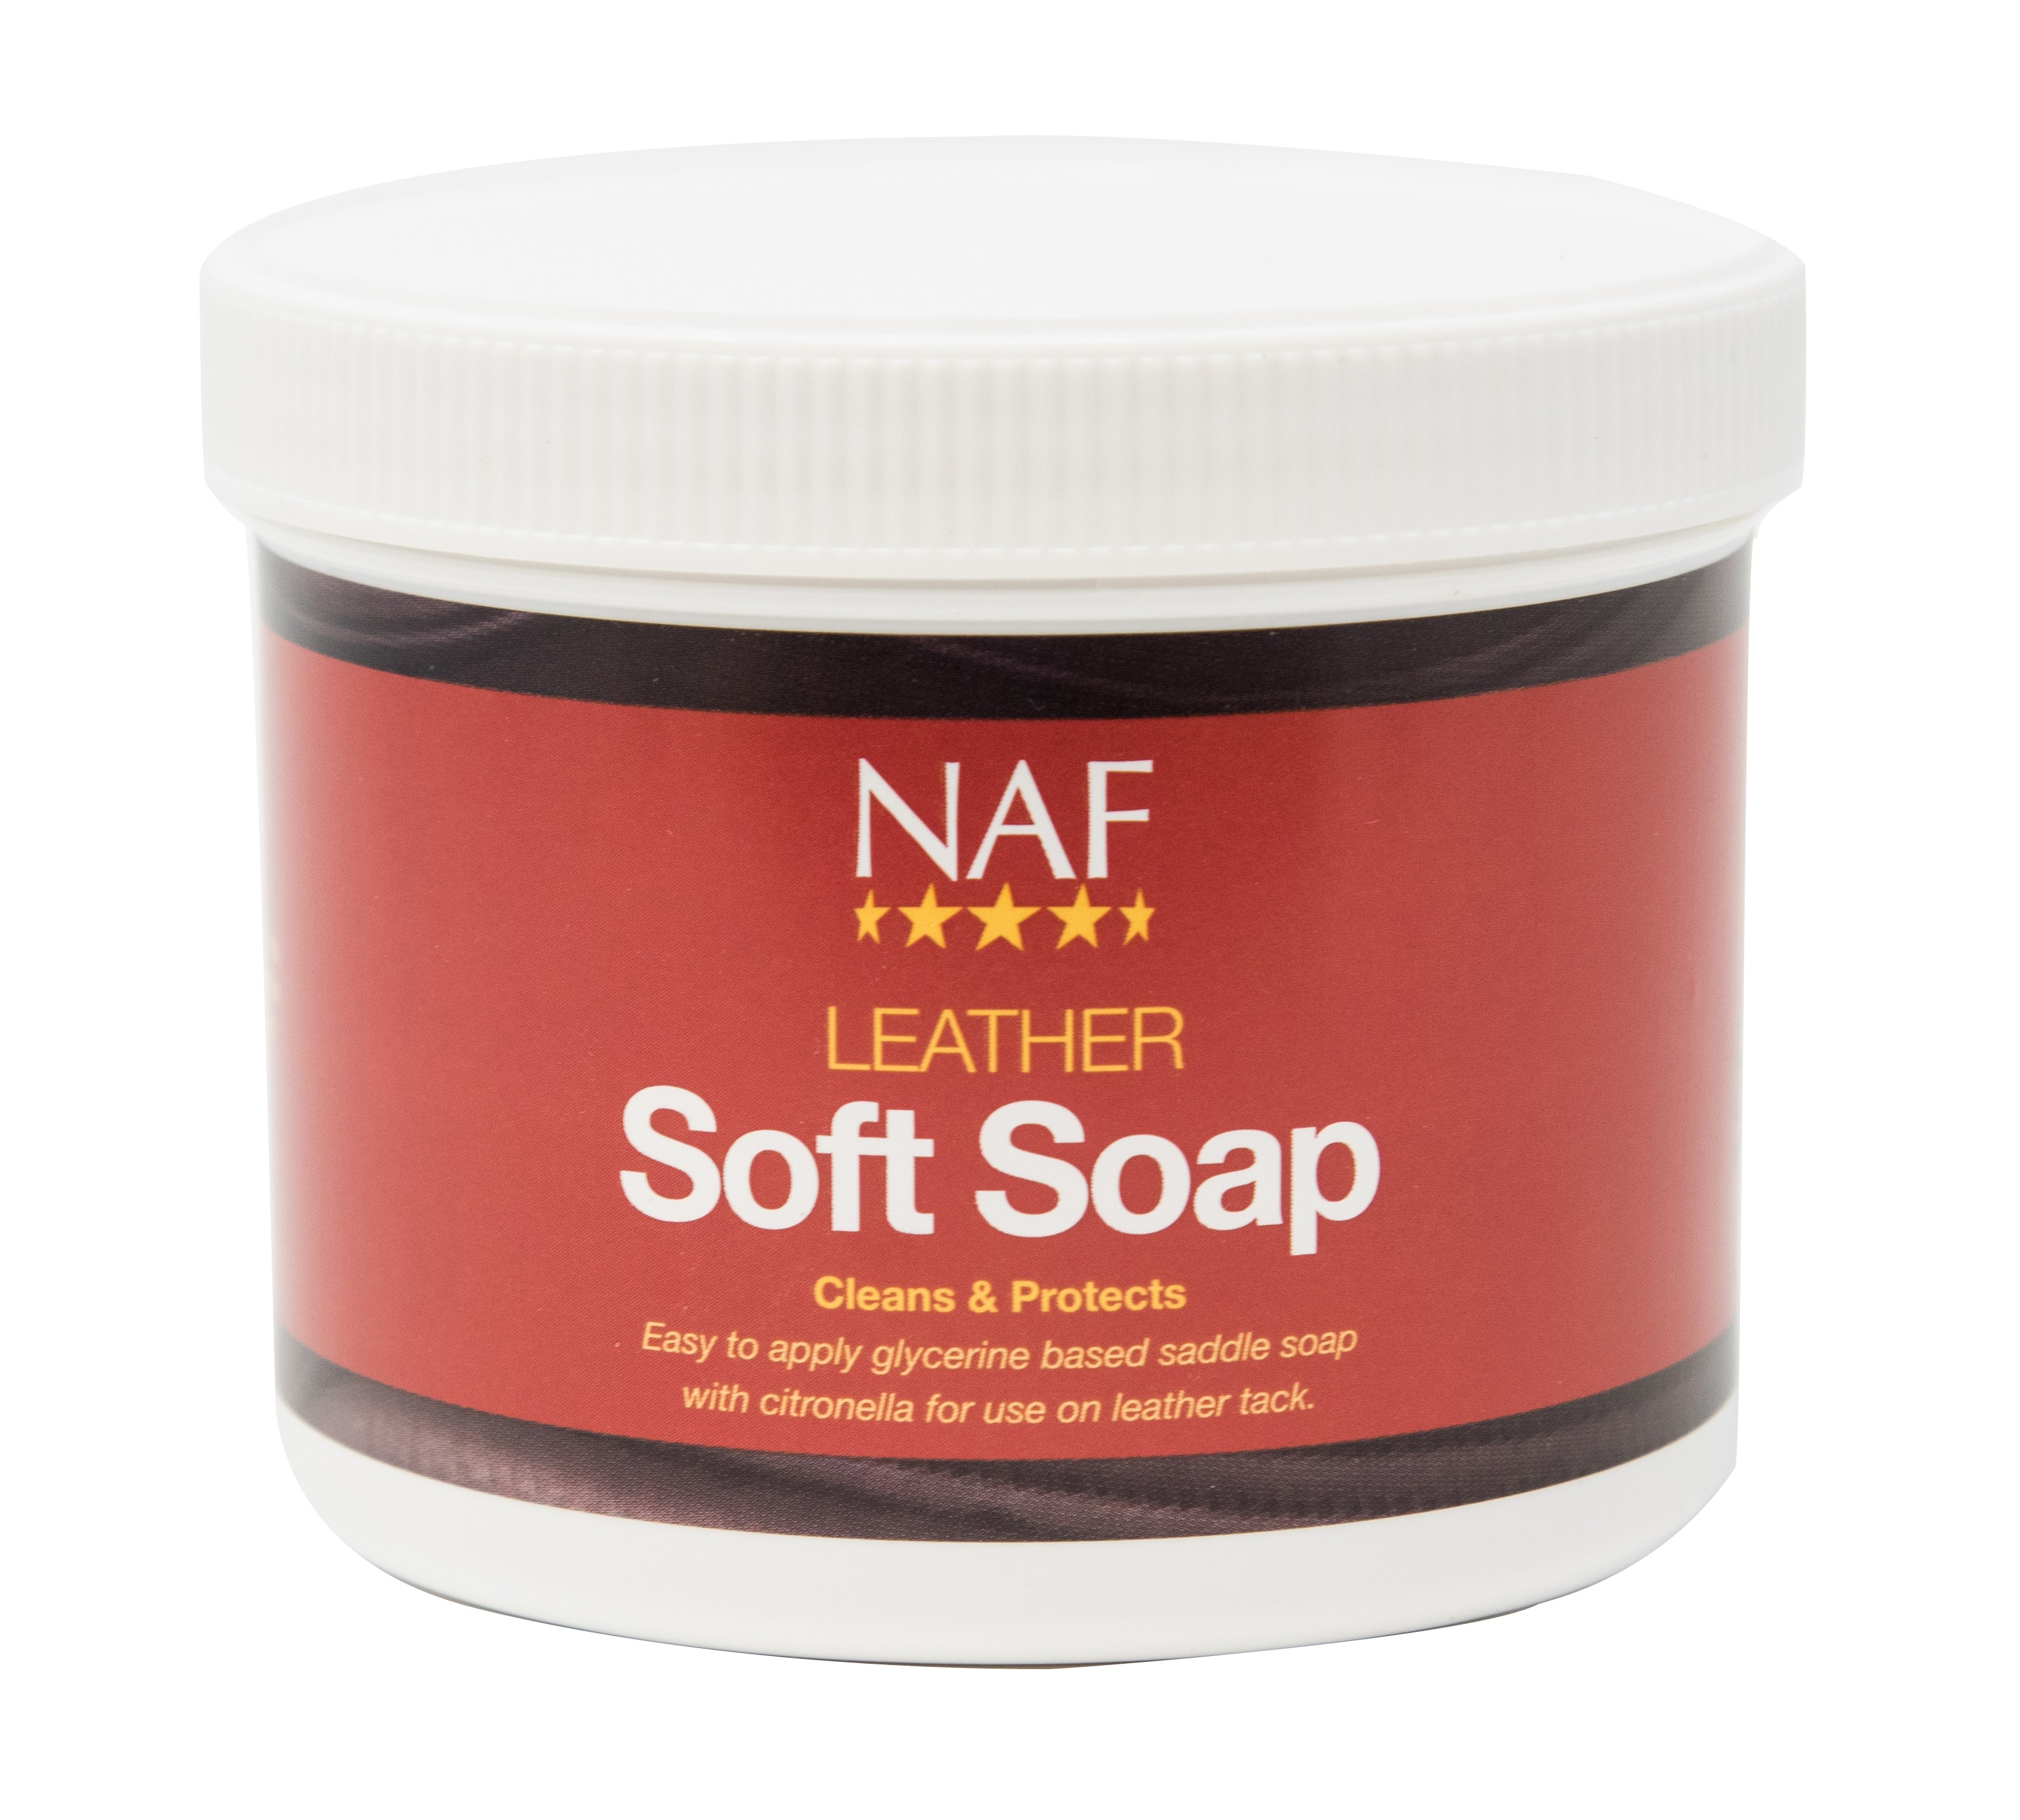 NAF Leather Soft Soap  - Thomas Irving's equestrian and accessories store  NAF Leather Soft Soap